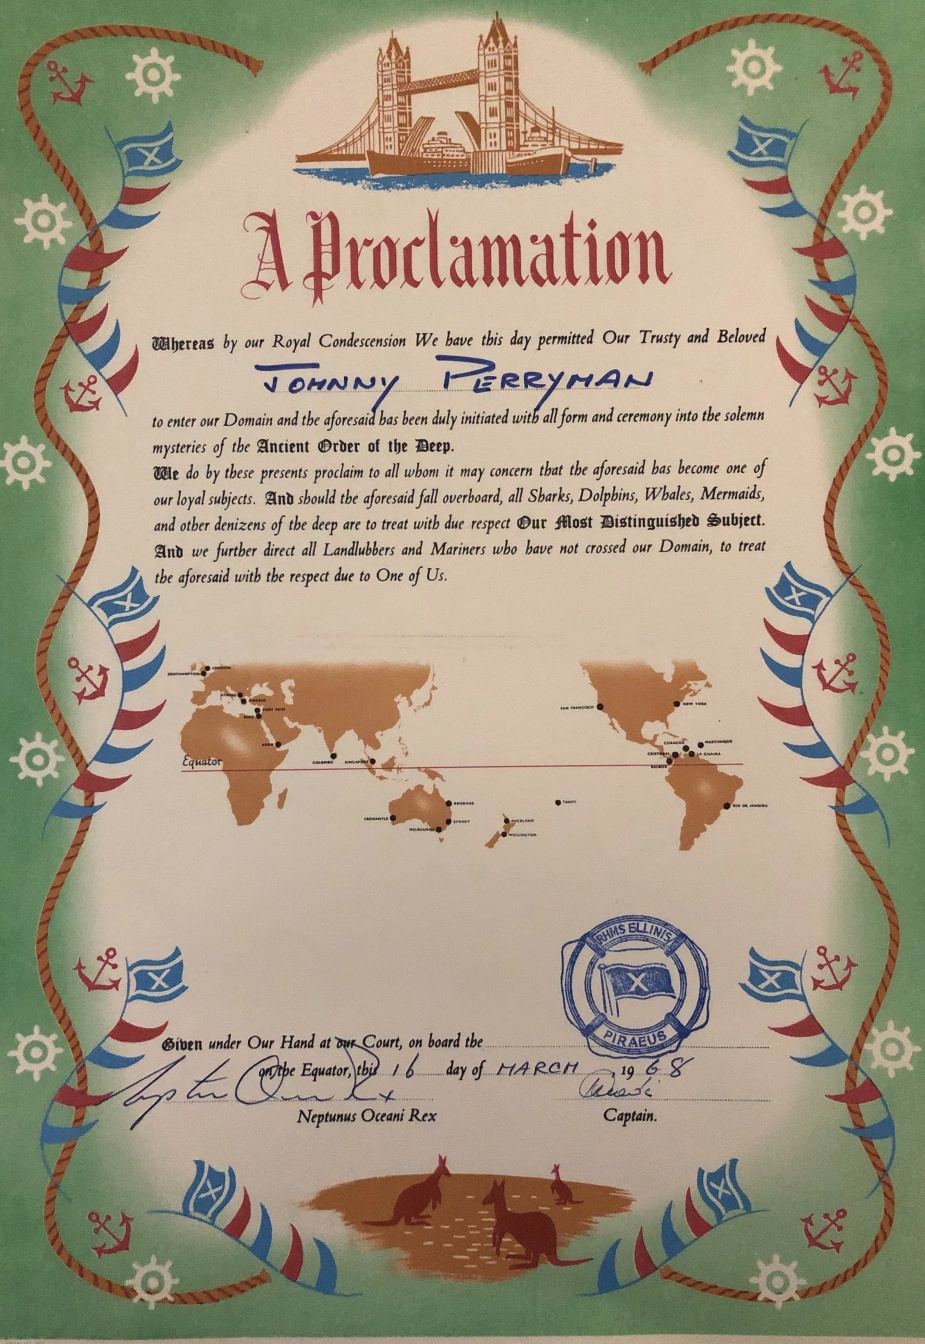 Crossing the equator certificates were regularly presented to travellers onboard passenger ships as may be seen in the example above.